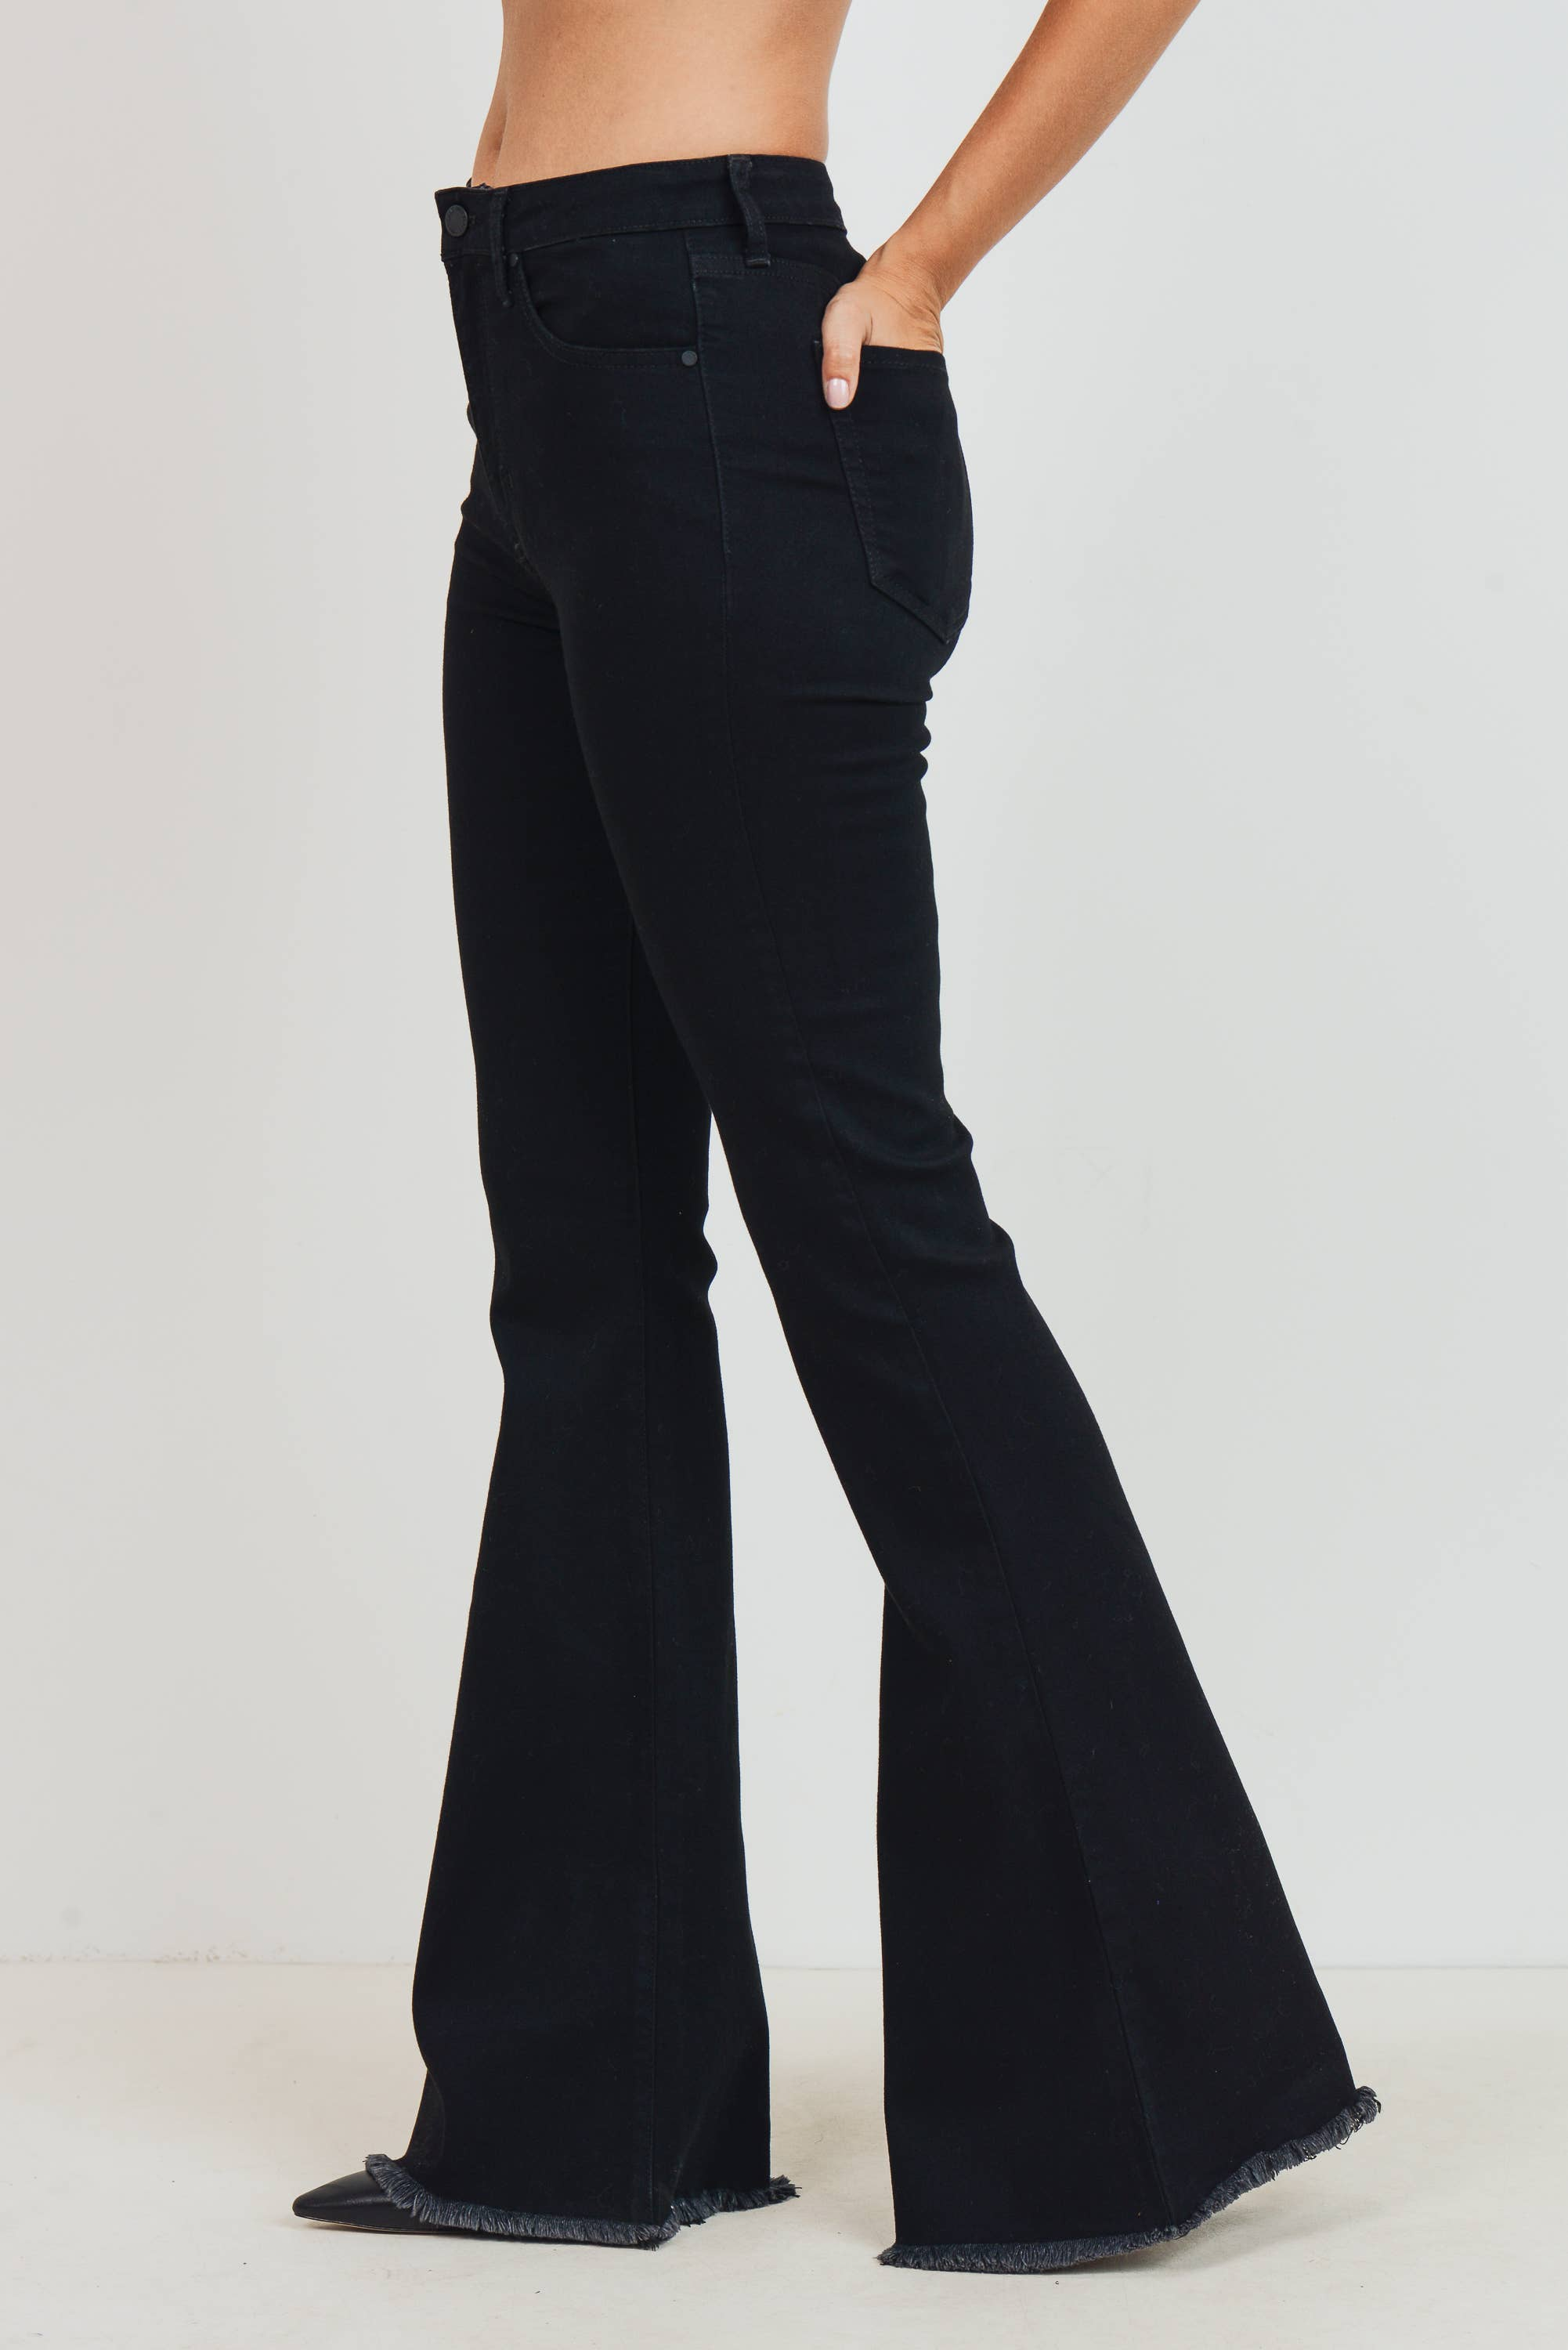 Black High Rise Classic Bell Bottom